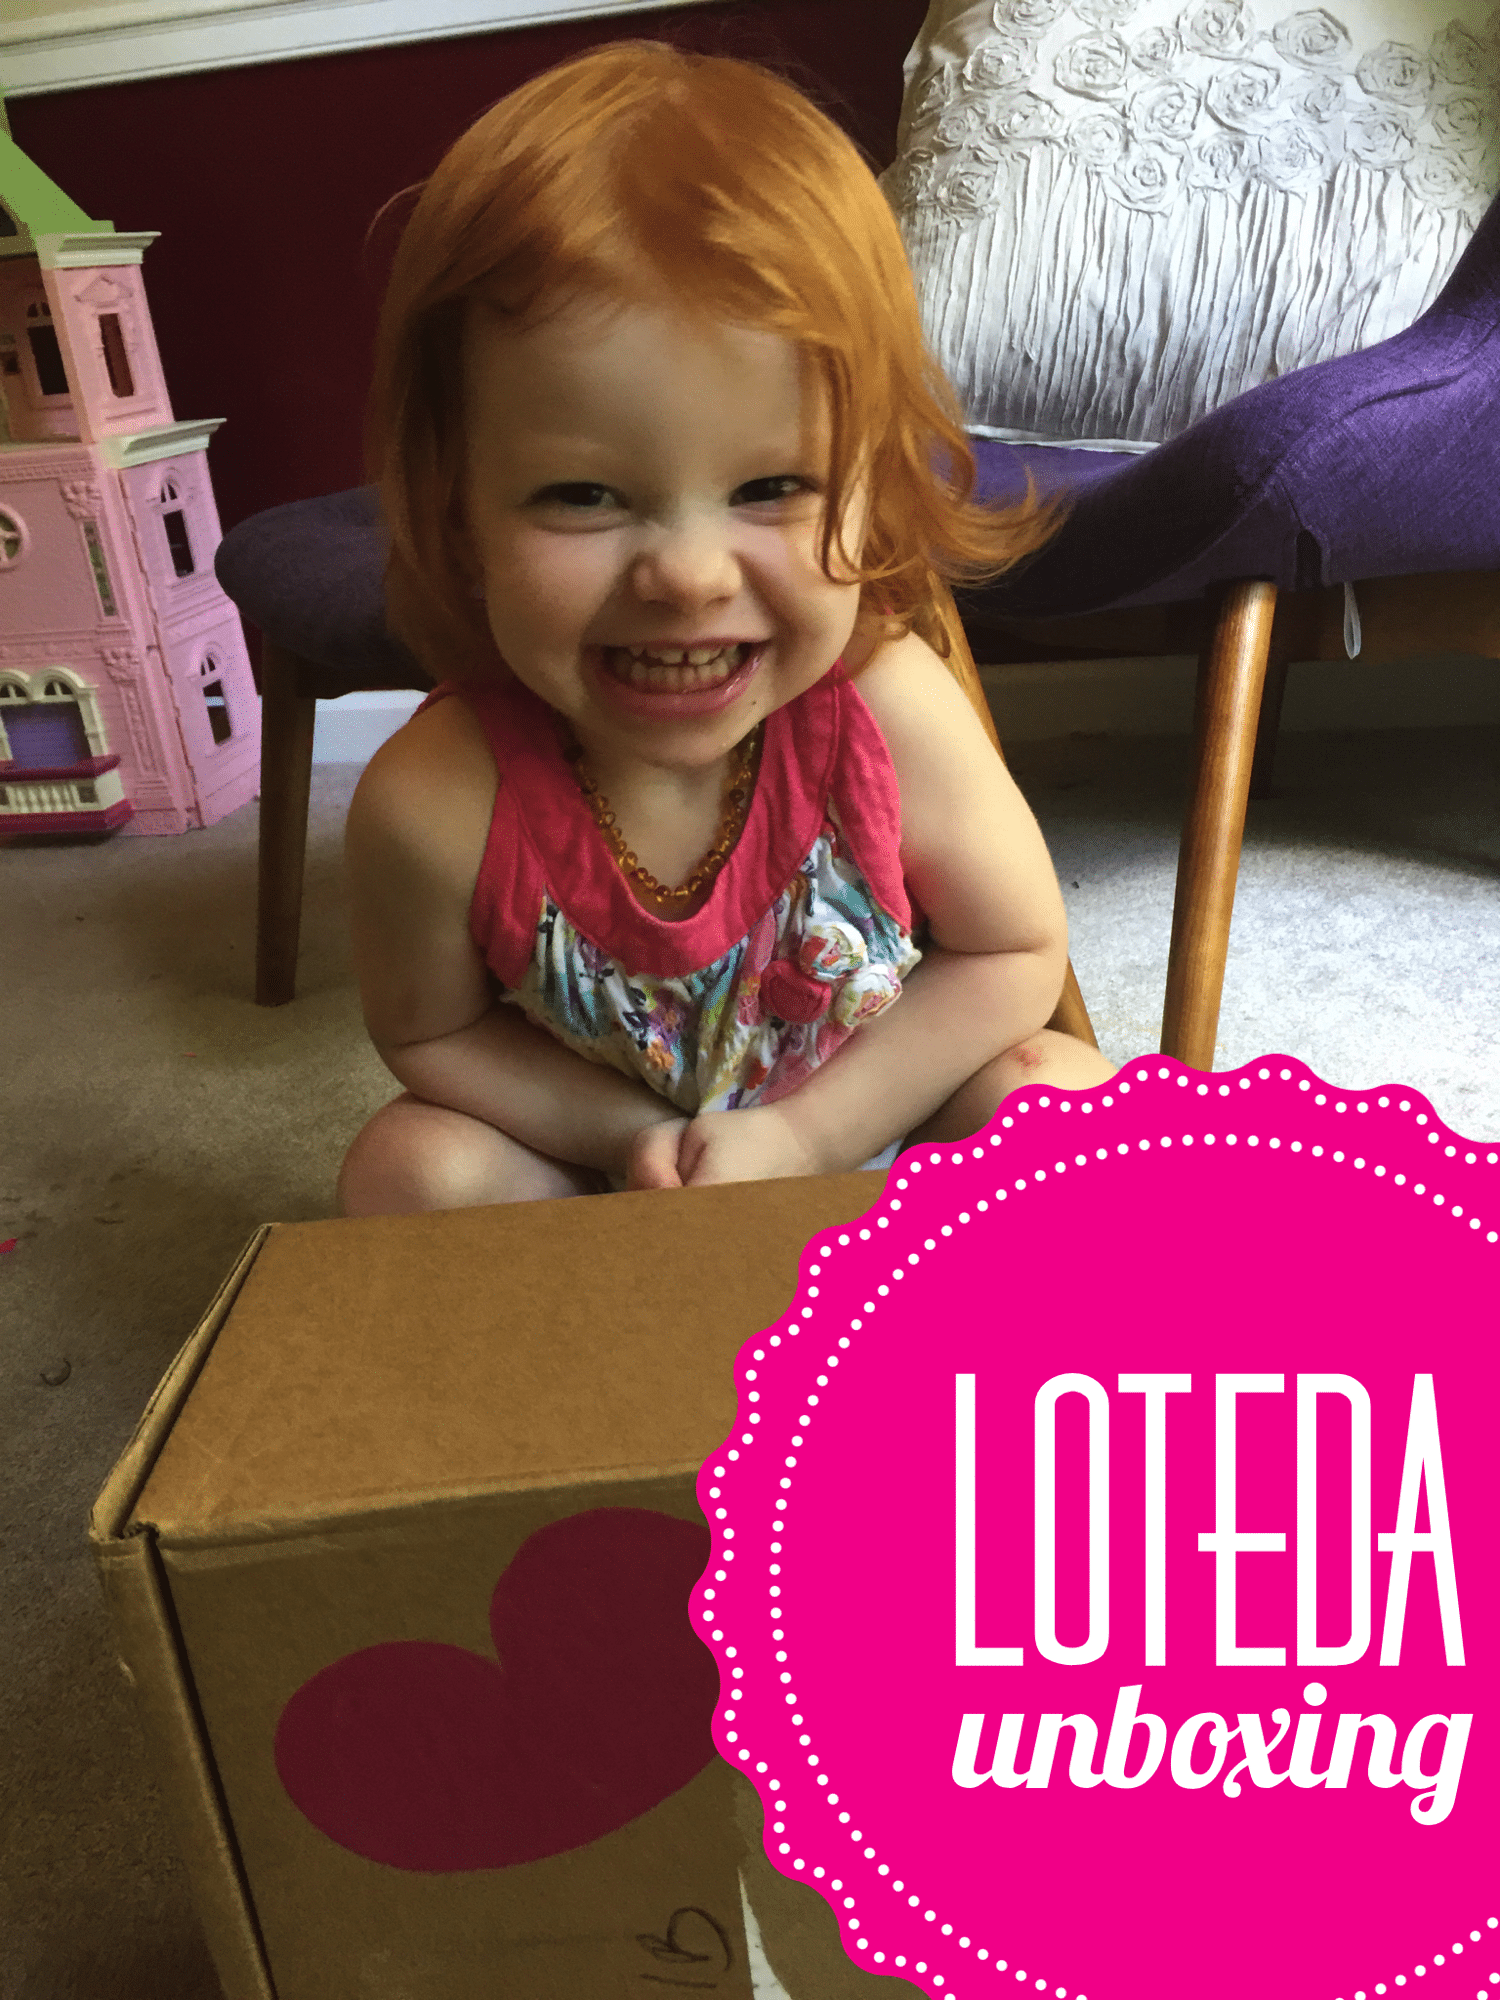 loteda unboxing